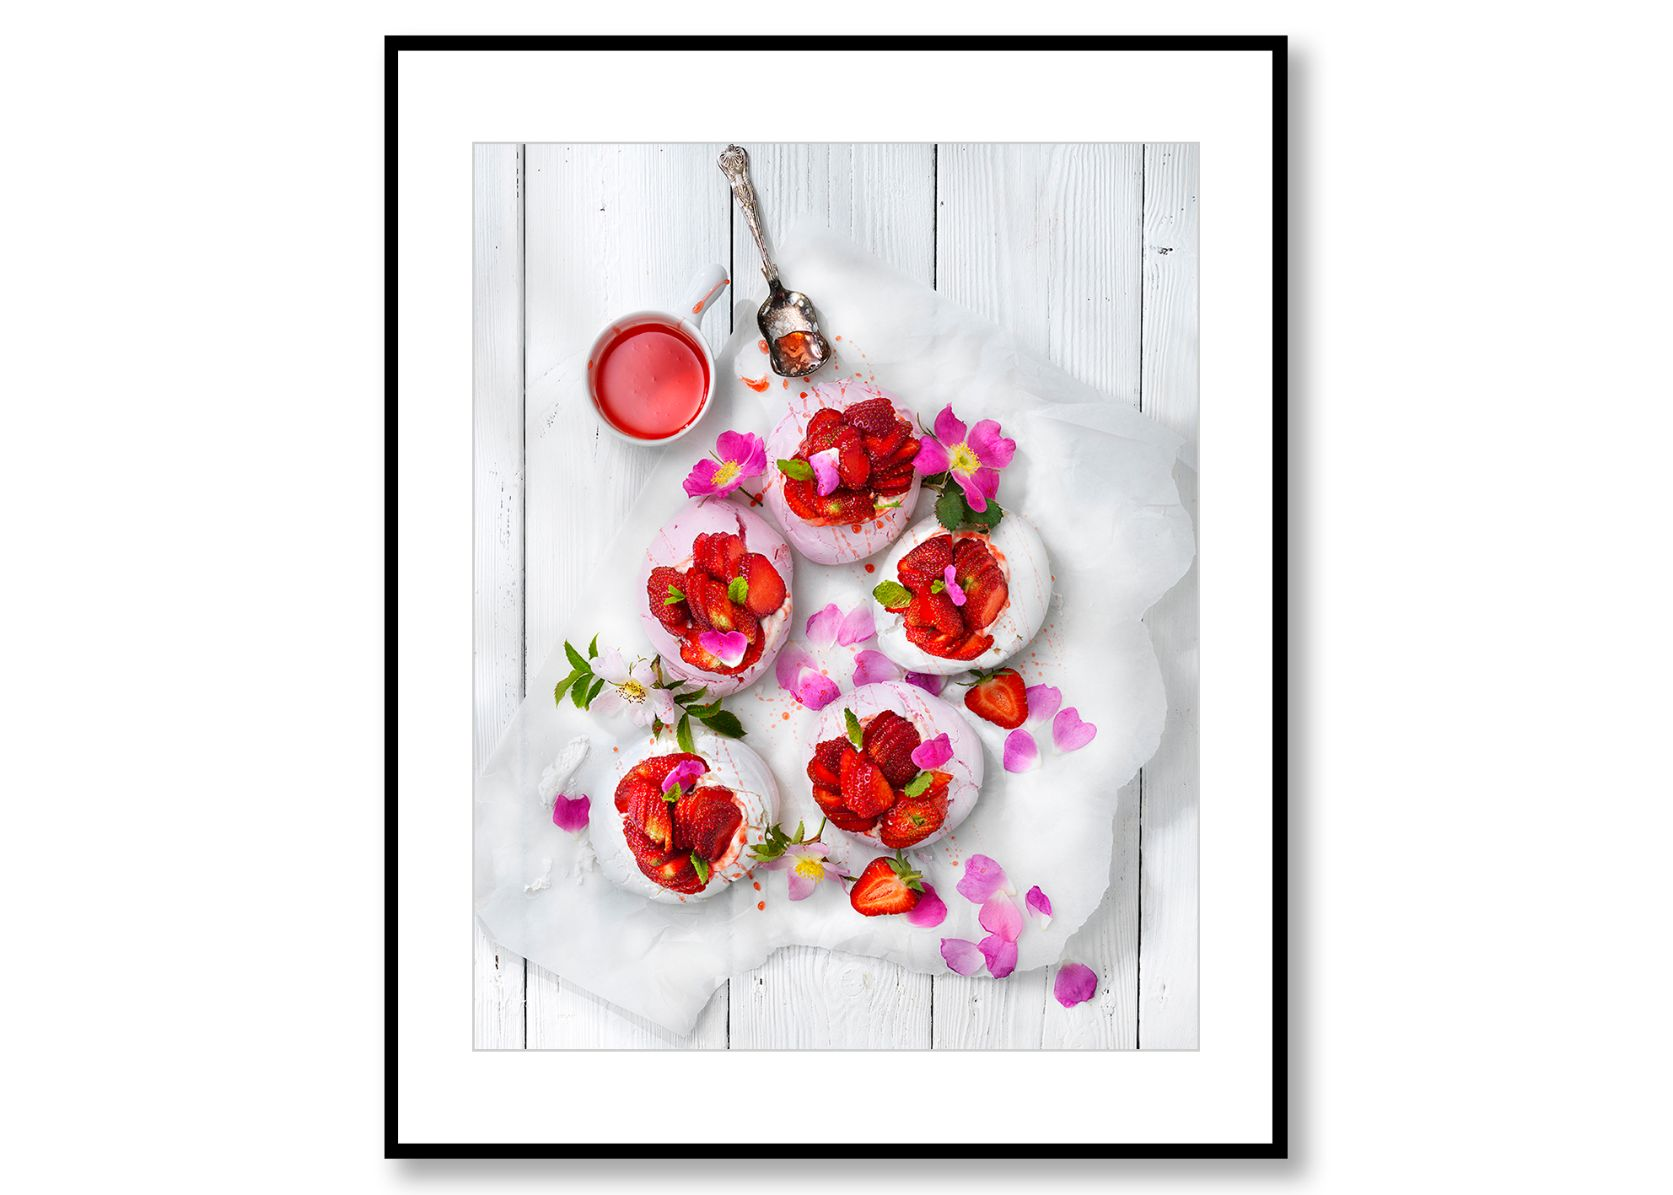 Meringues with strawberries. Food Art. Prints for sale. Photo by Fredrik Rege